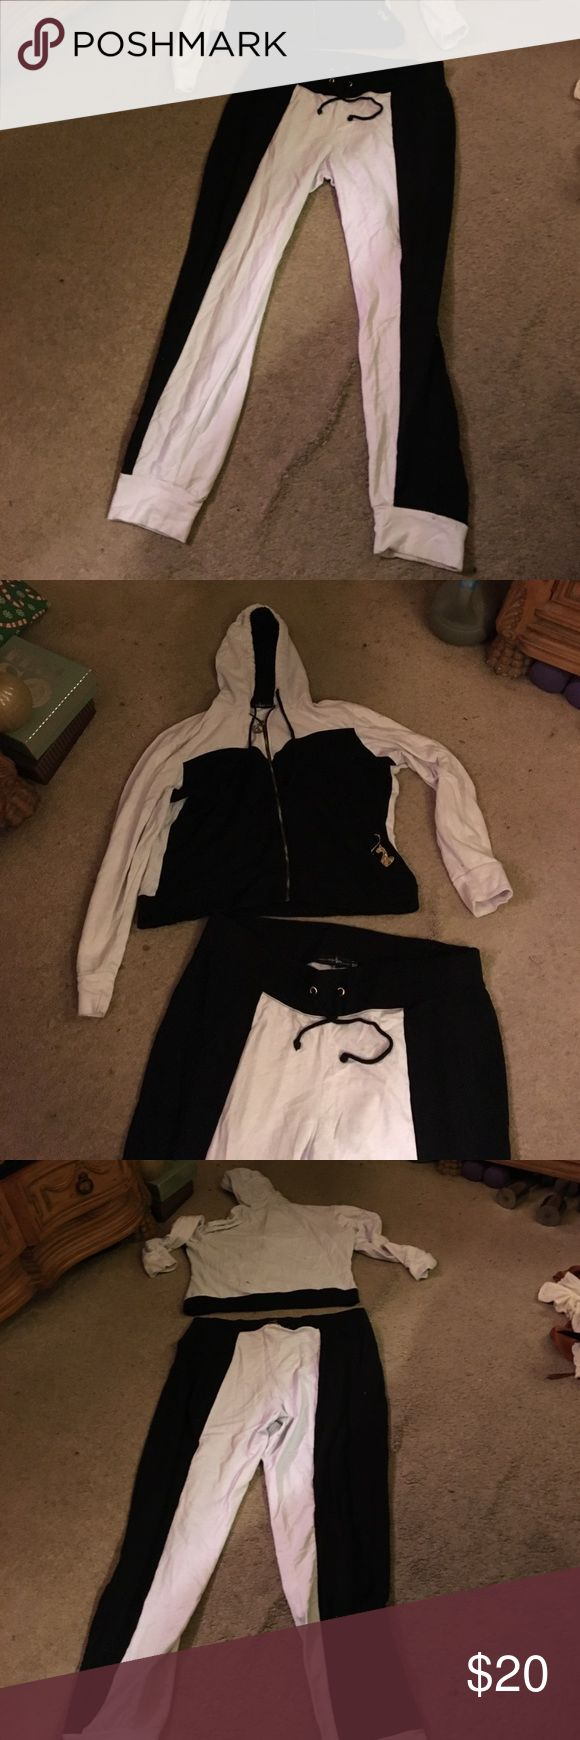 Baby phat sweatsuit 3x baby phat sweatsuit, white and black color, Baby Phat Other